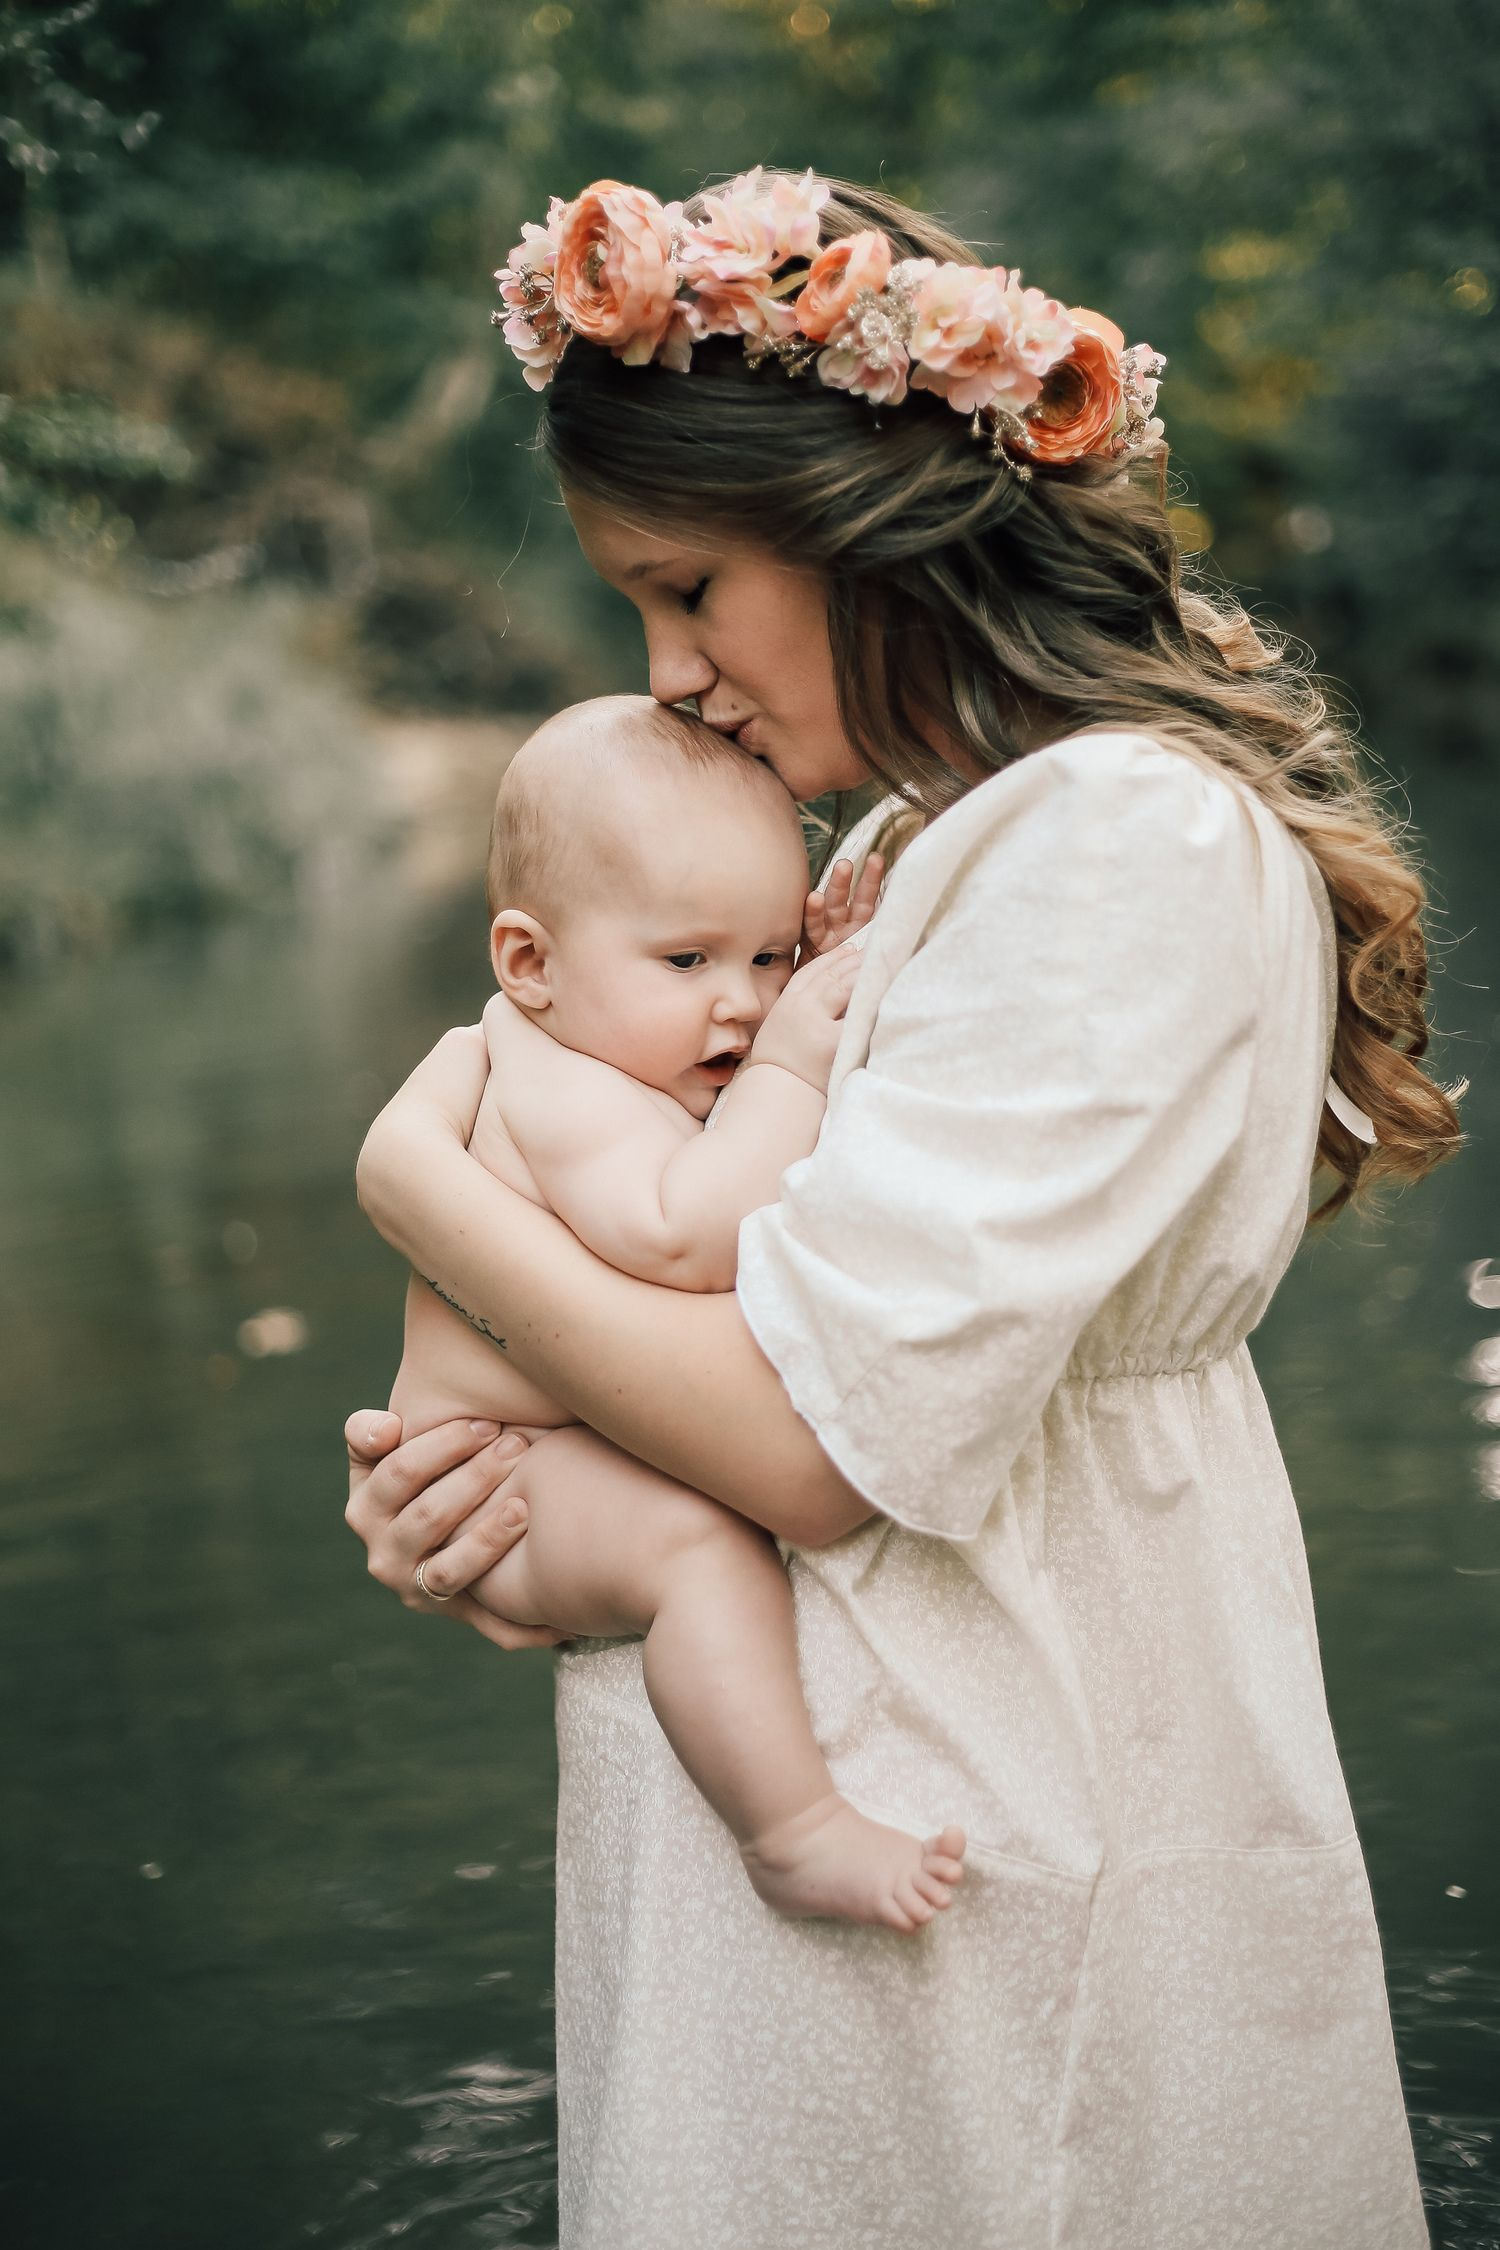 An Intimate Breastfeeding Session In The Creek The Bond